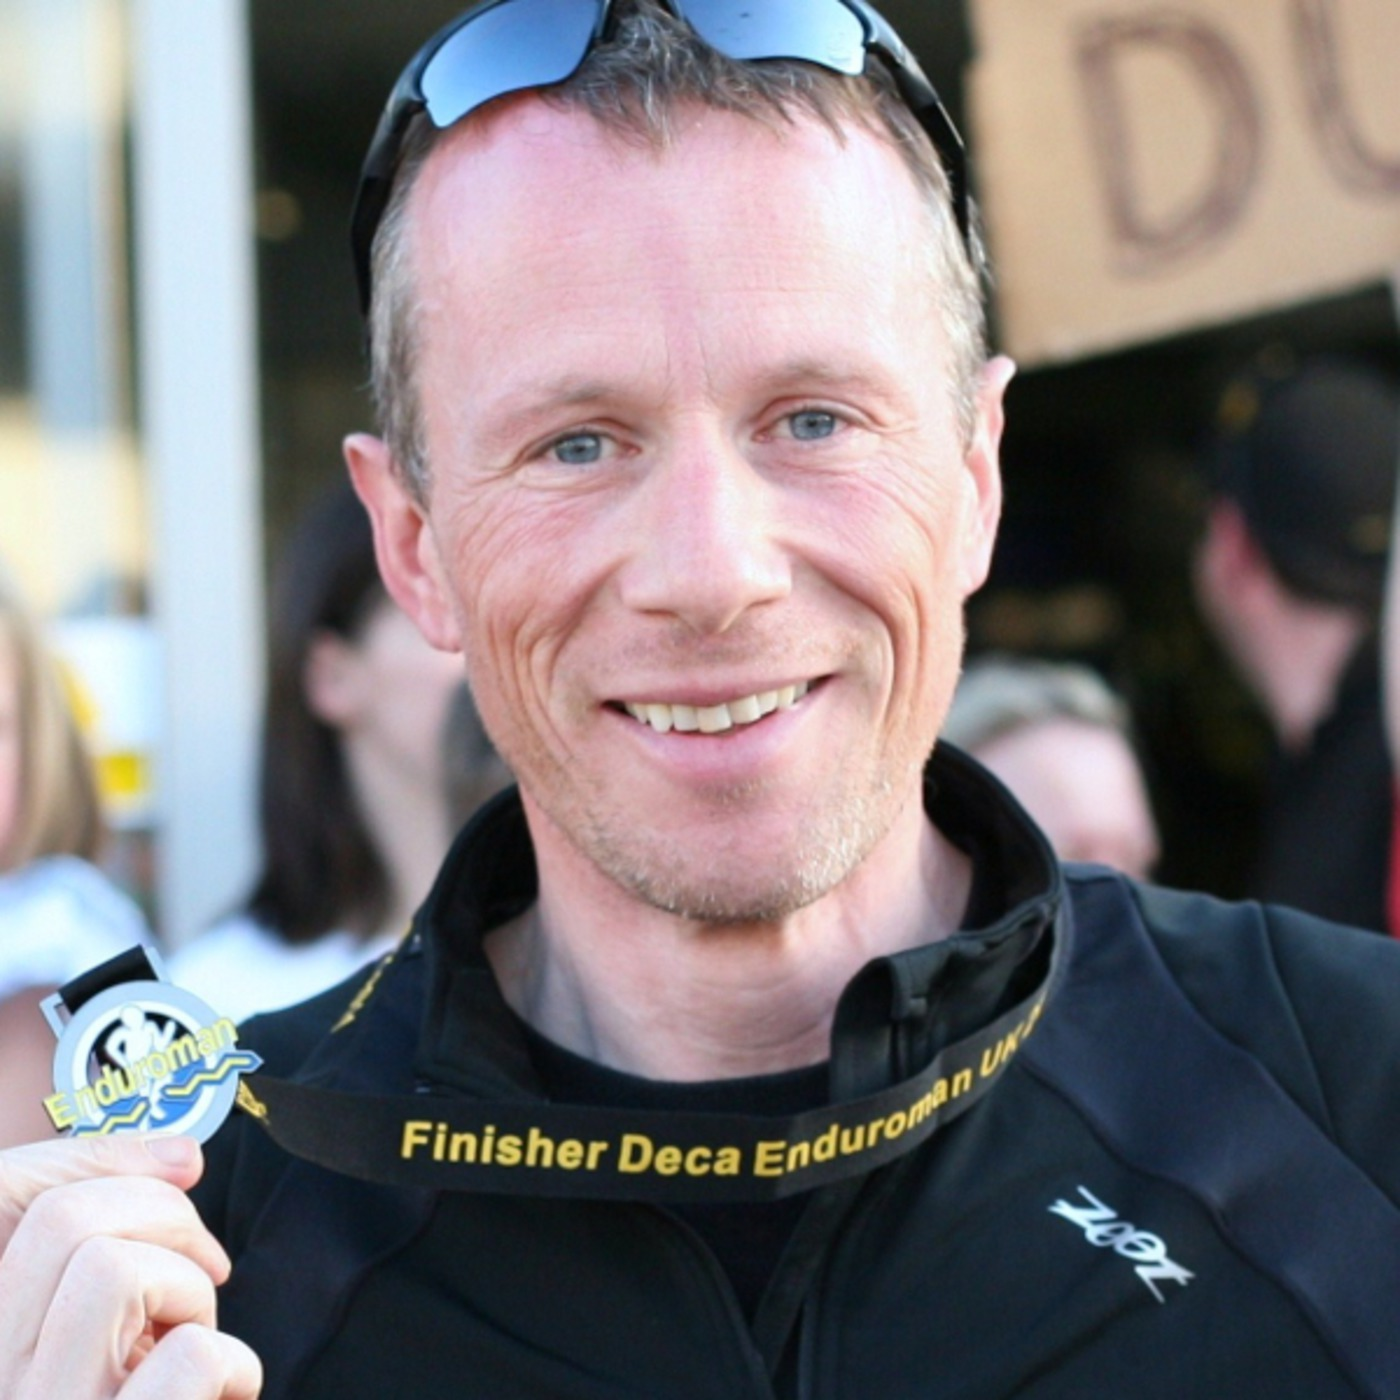 Episode 15 - Gerry Duffy - Endurance Athlete (1/2) Sporting